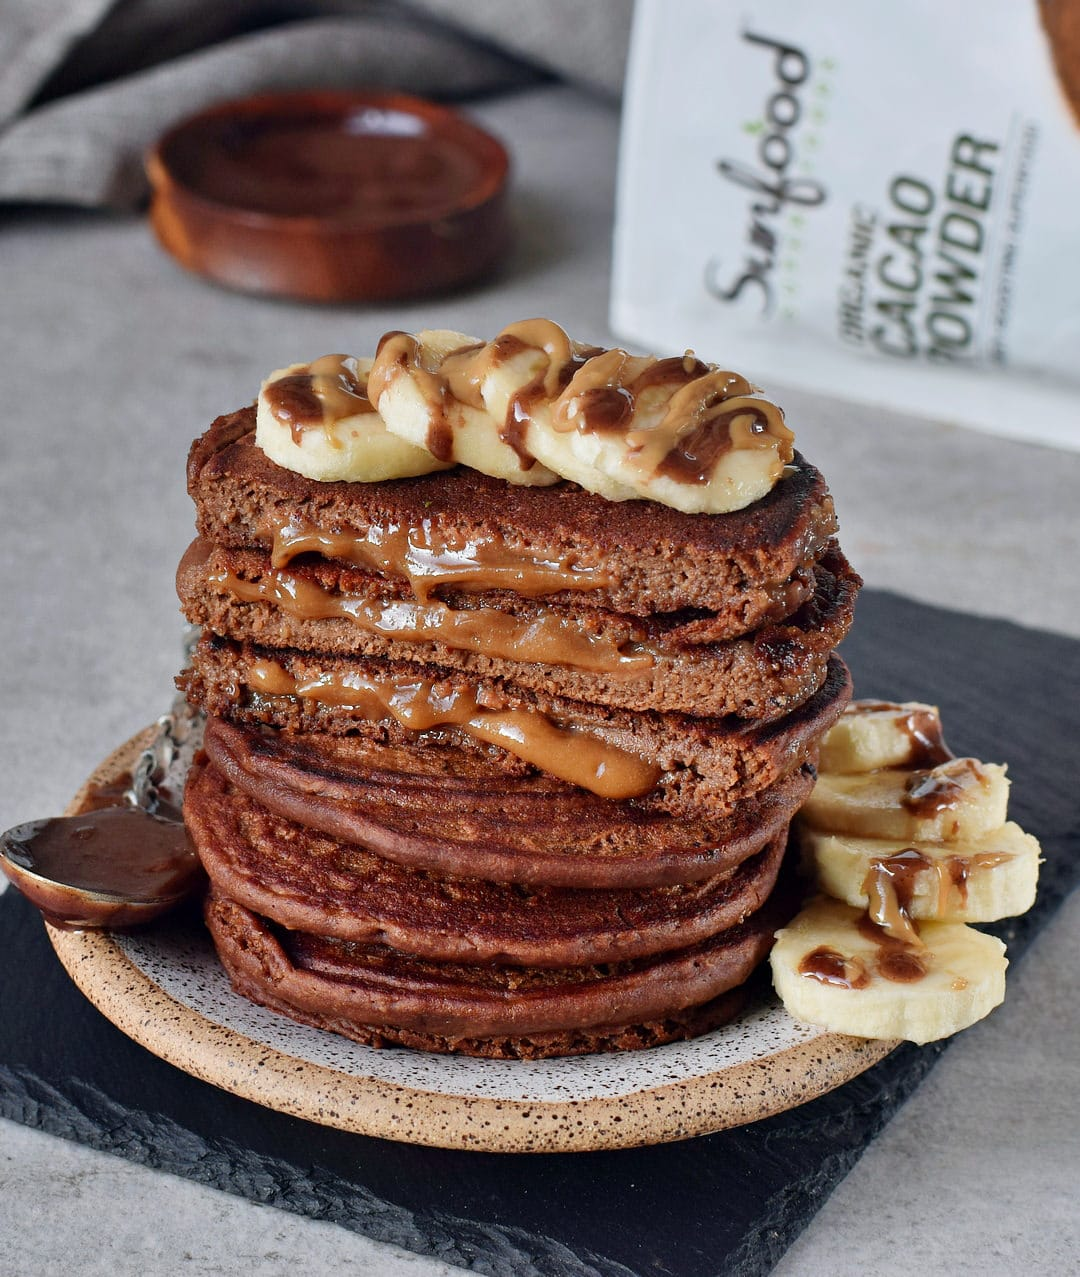 Vegan caramel chocolate pancakes with banana slices and Sunfood pouch in the background